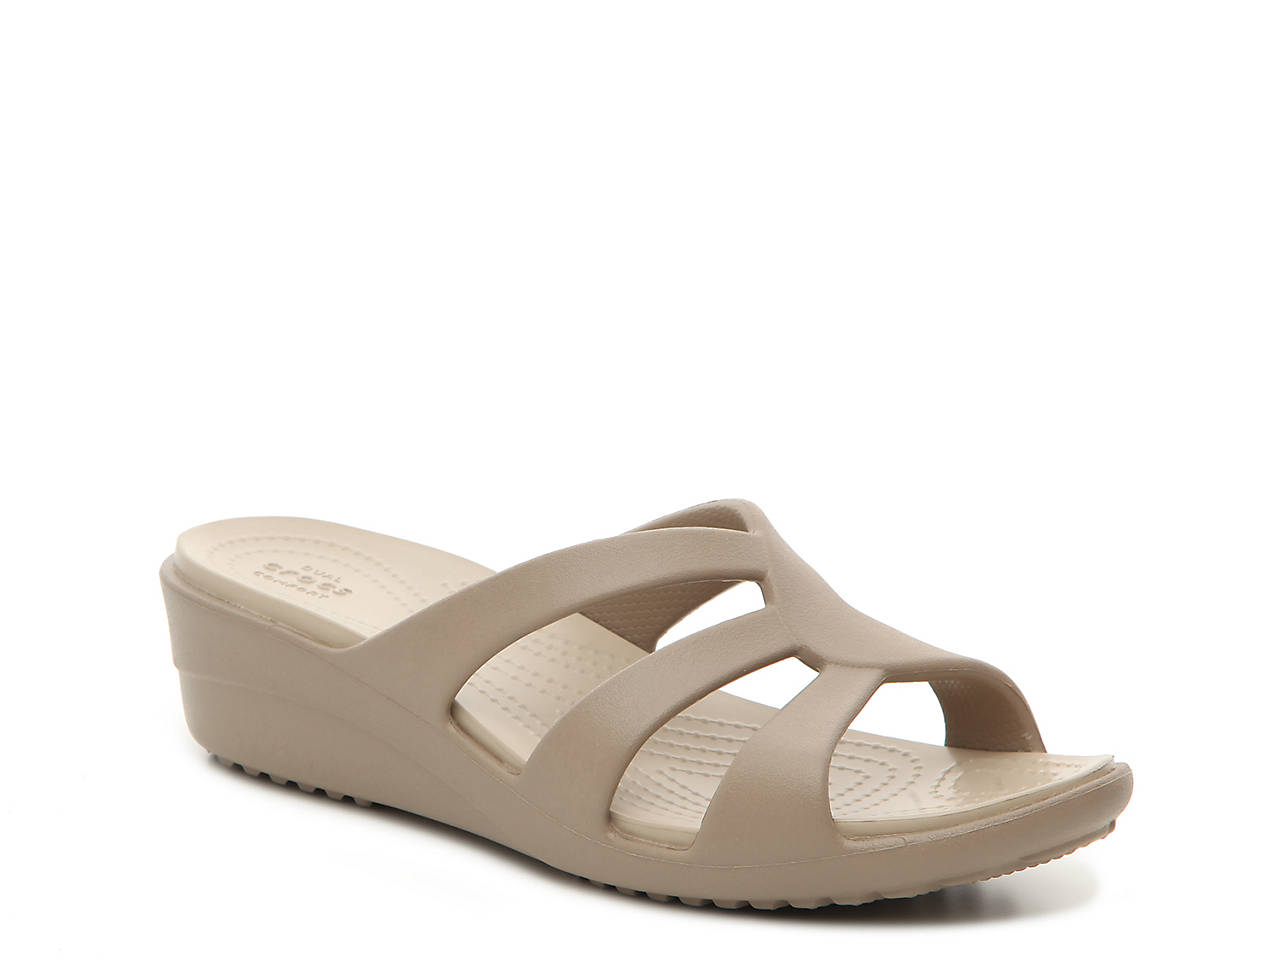 269295a49ce Crocs Sanrah Strappy Wedge Sandal Women s Shoes